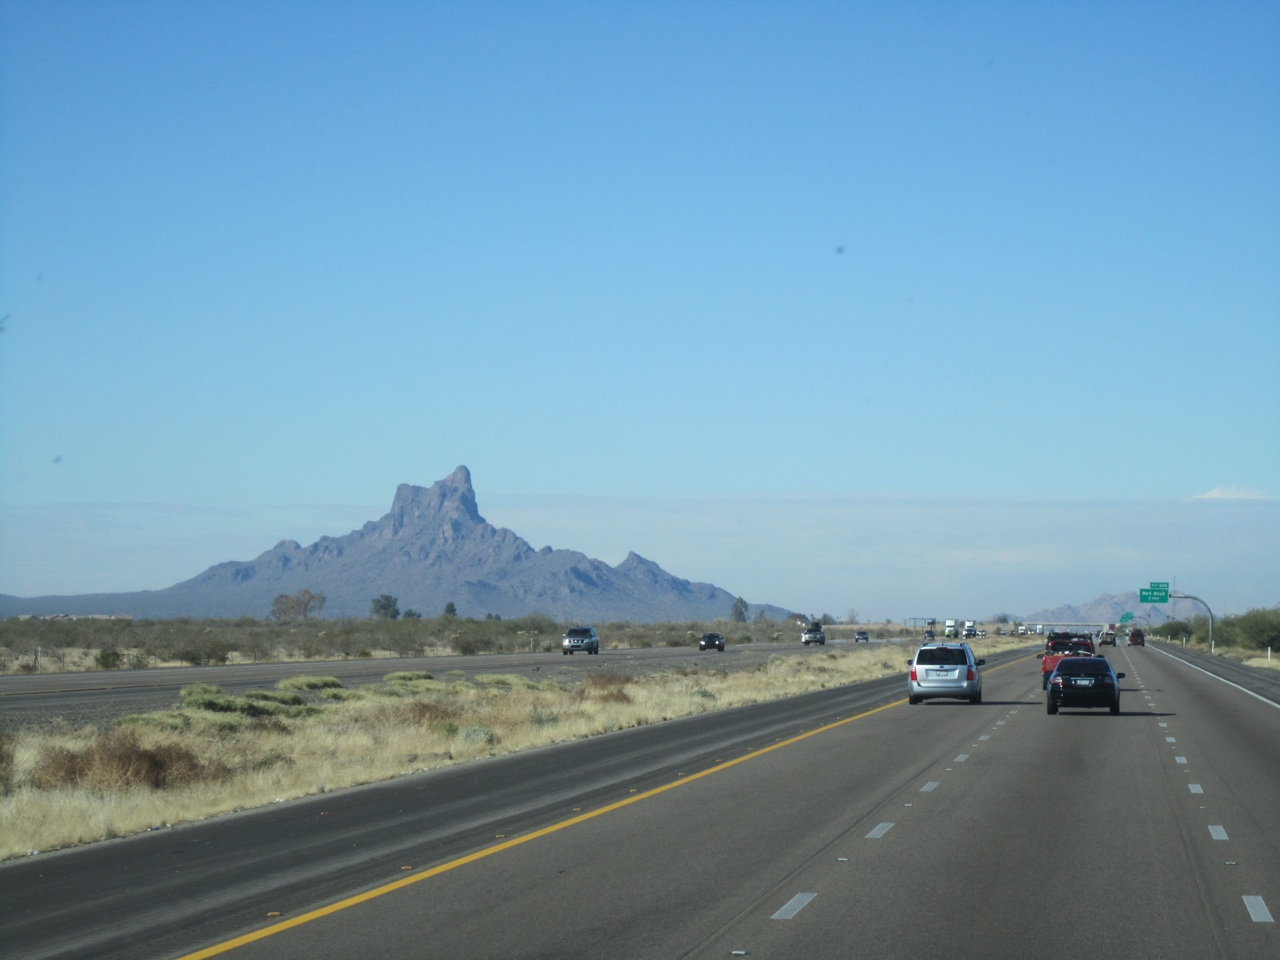 Picacho Peak State Park In Arizona In The Distance